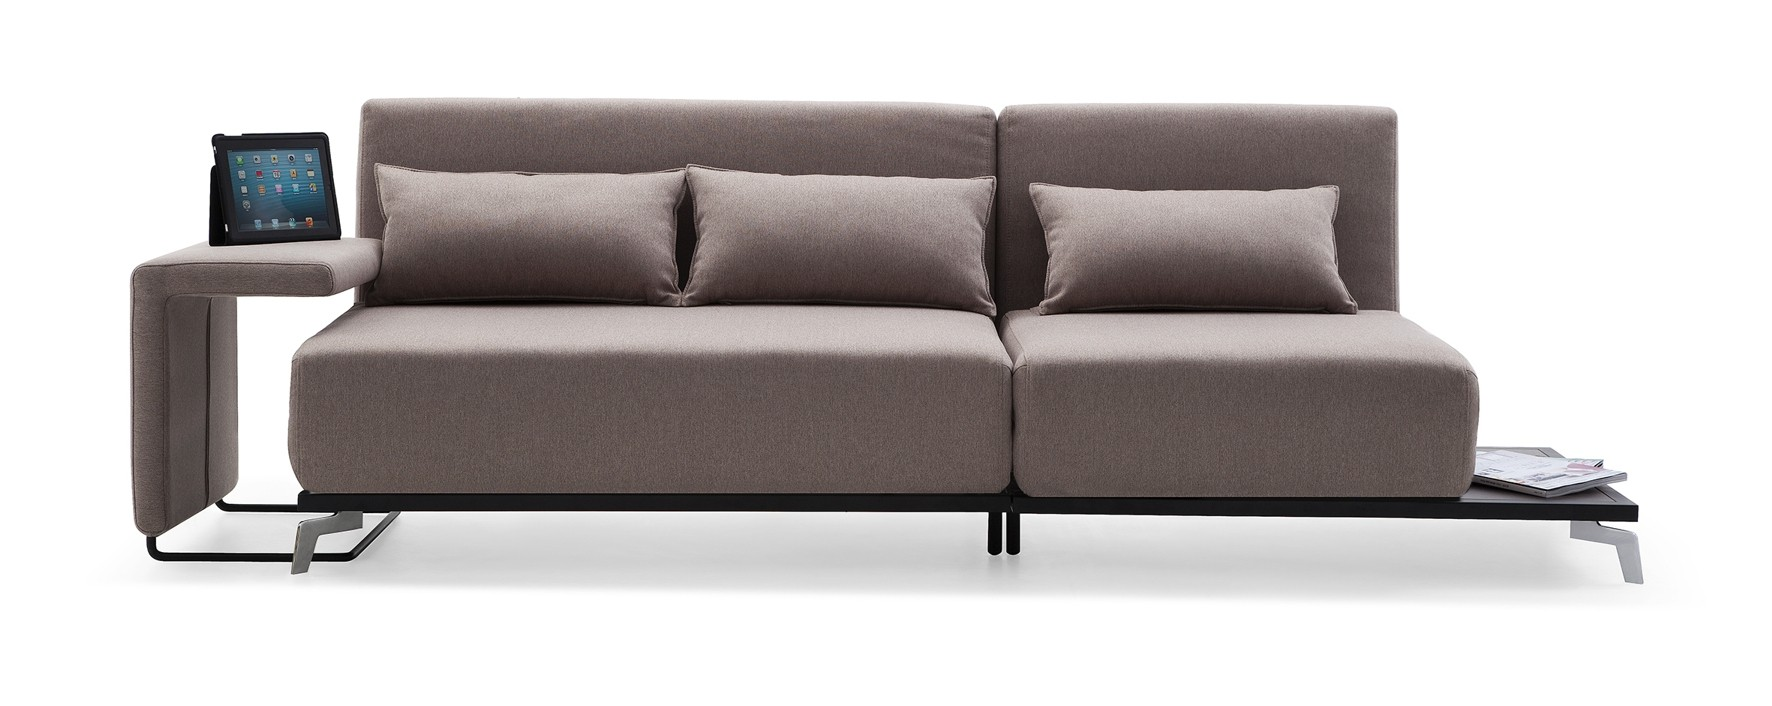 modern sofa beds cado modern furniture - jh033 modern sofa bed ... MQLRZRR